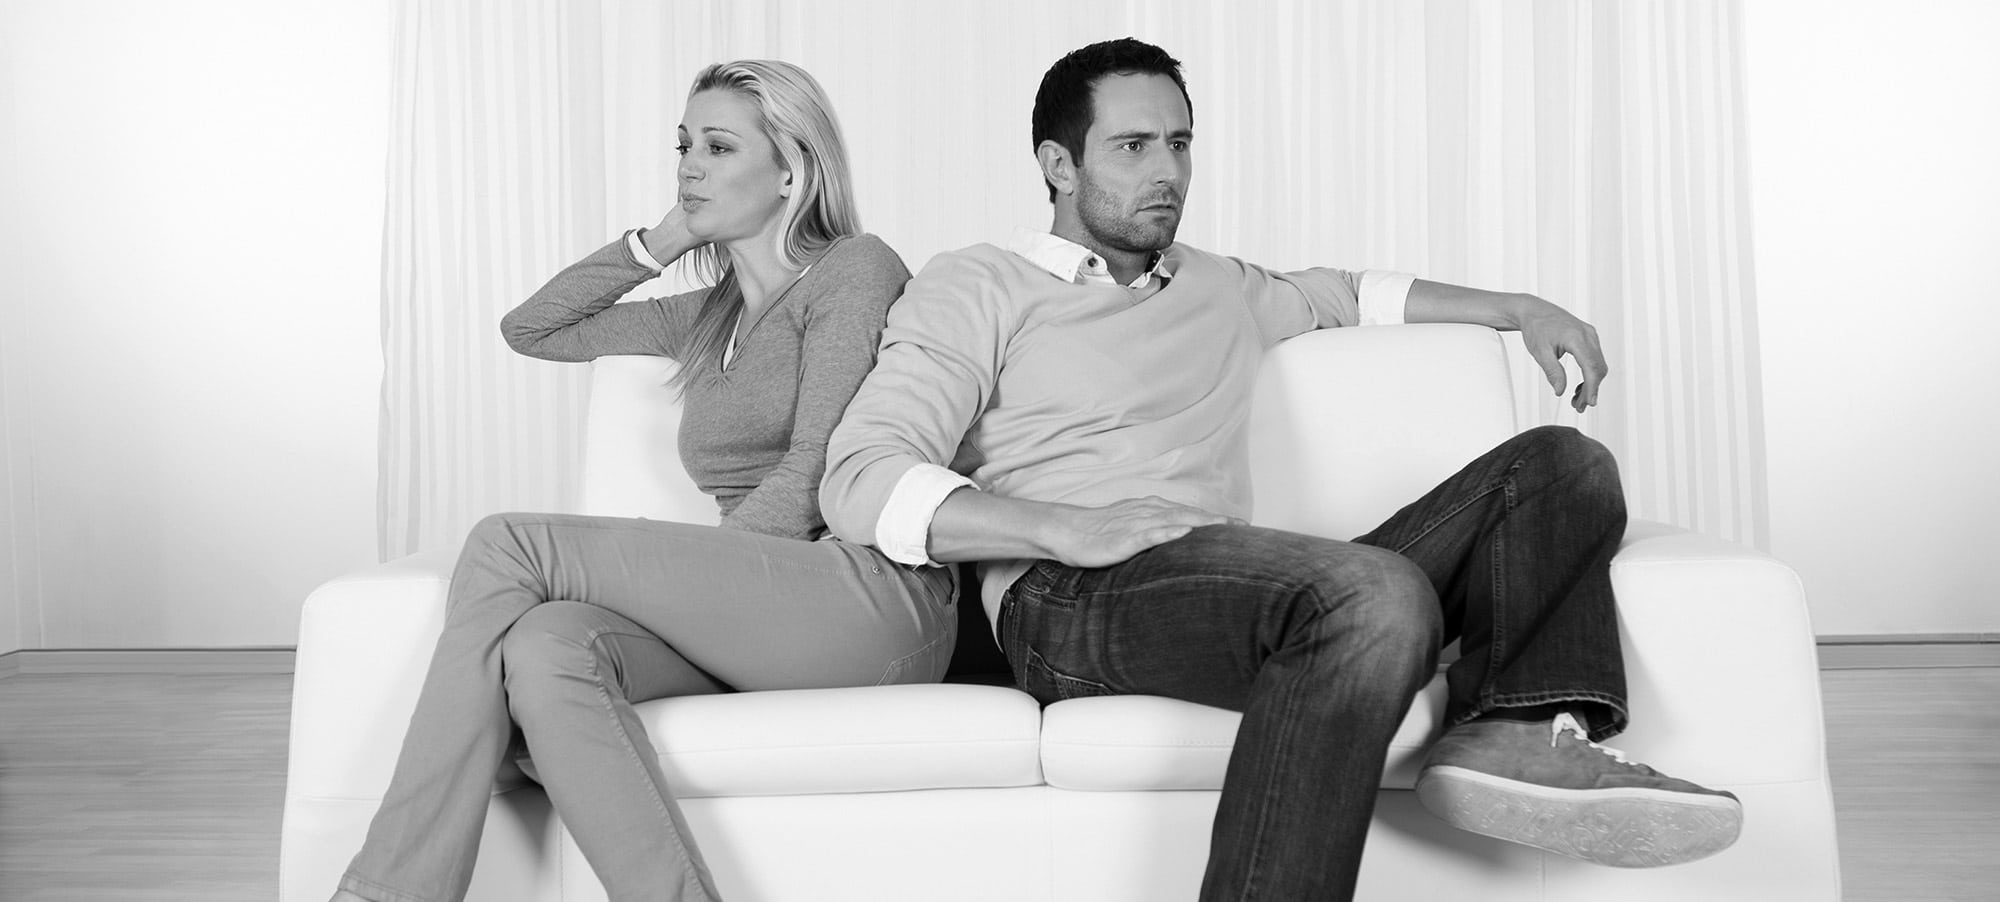 Swinger lifestyle marriage counselor